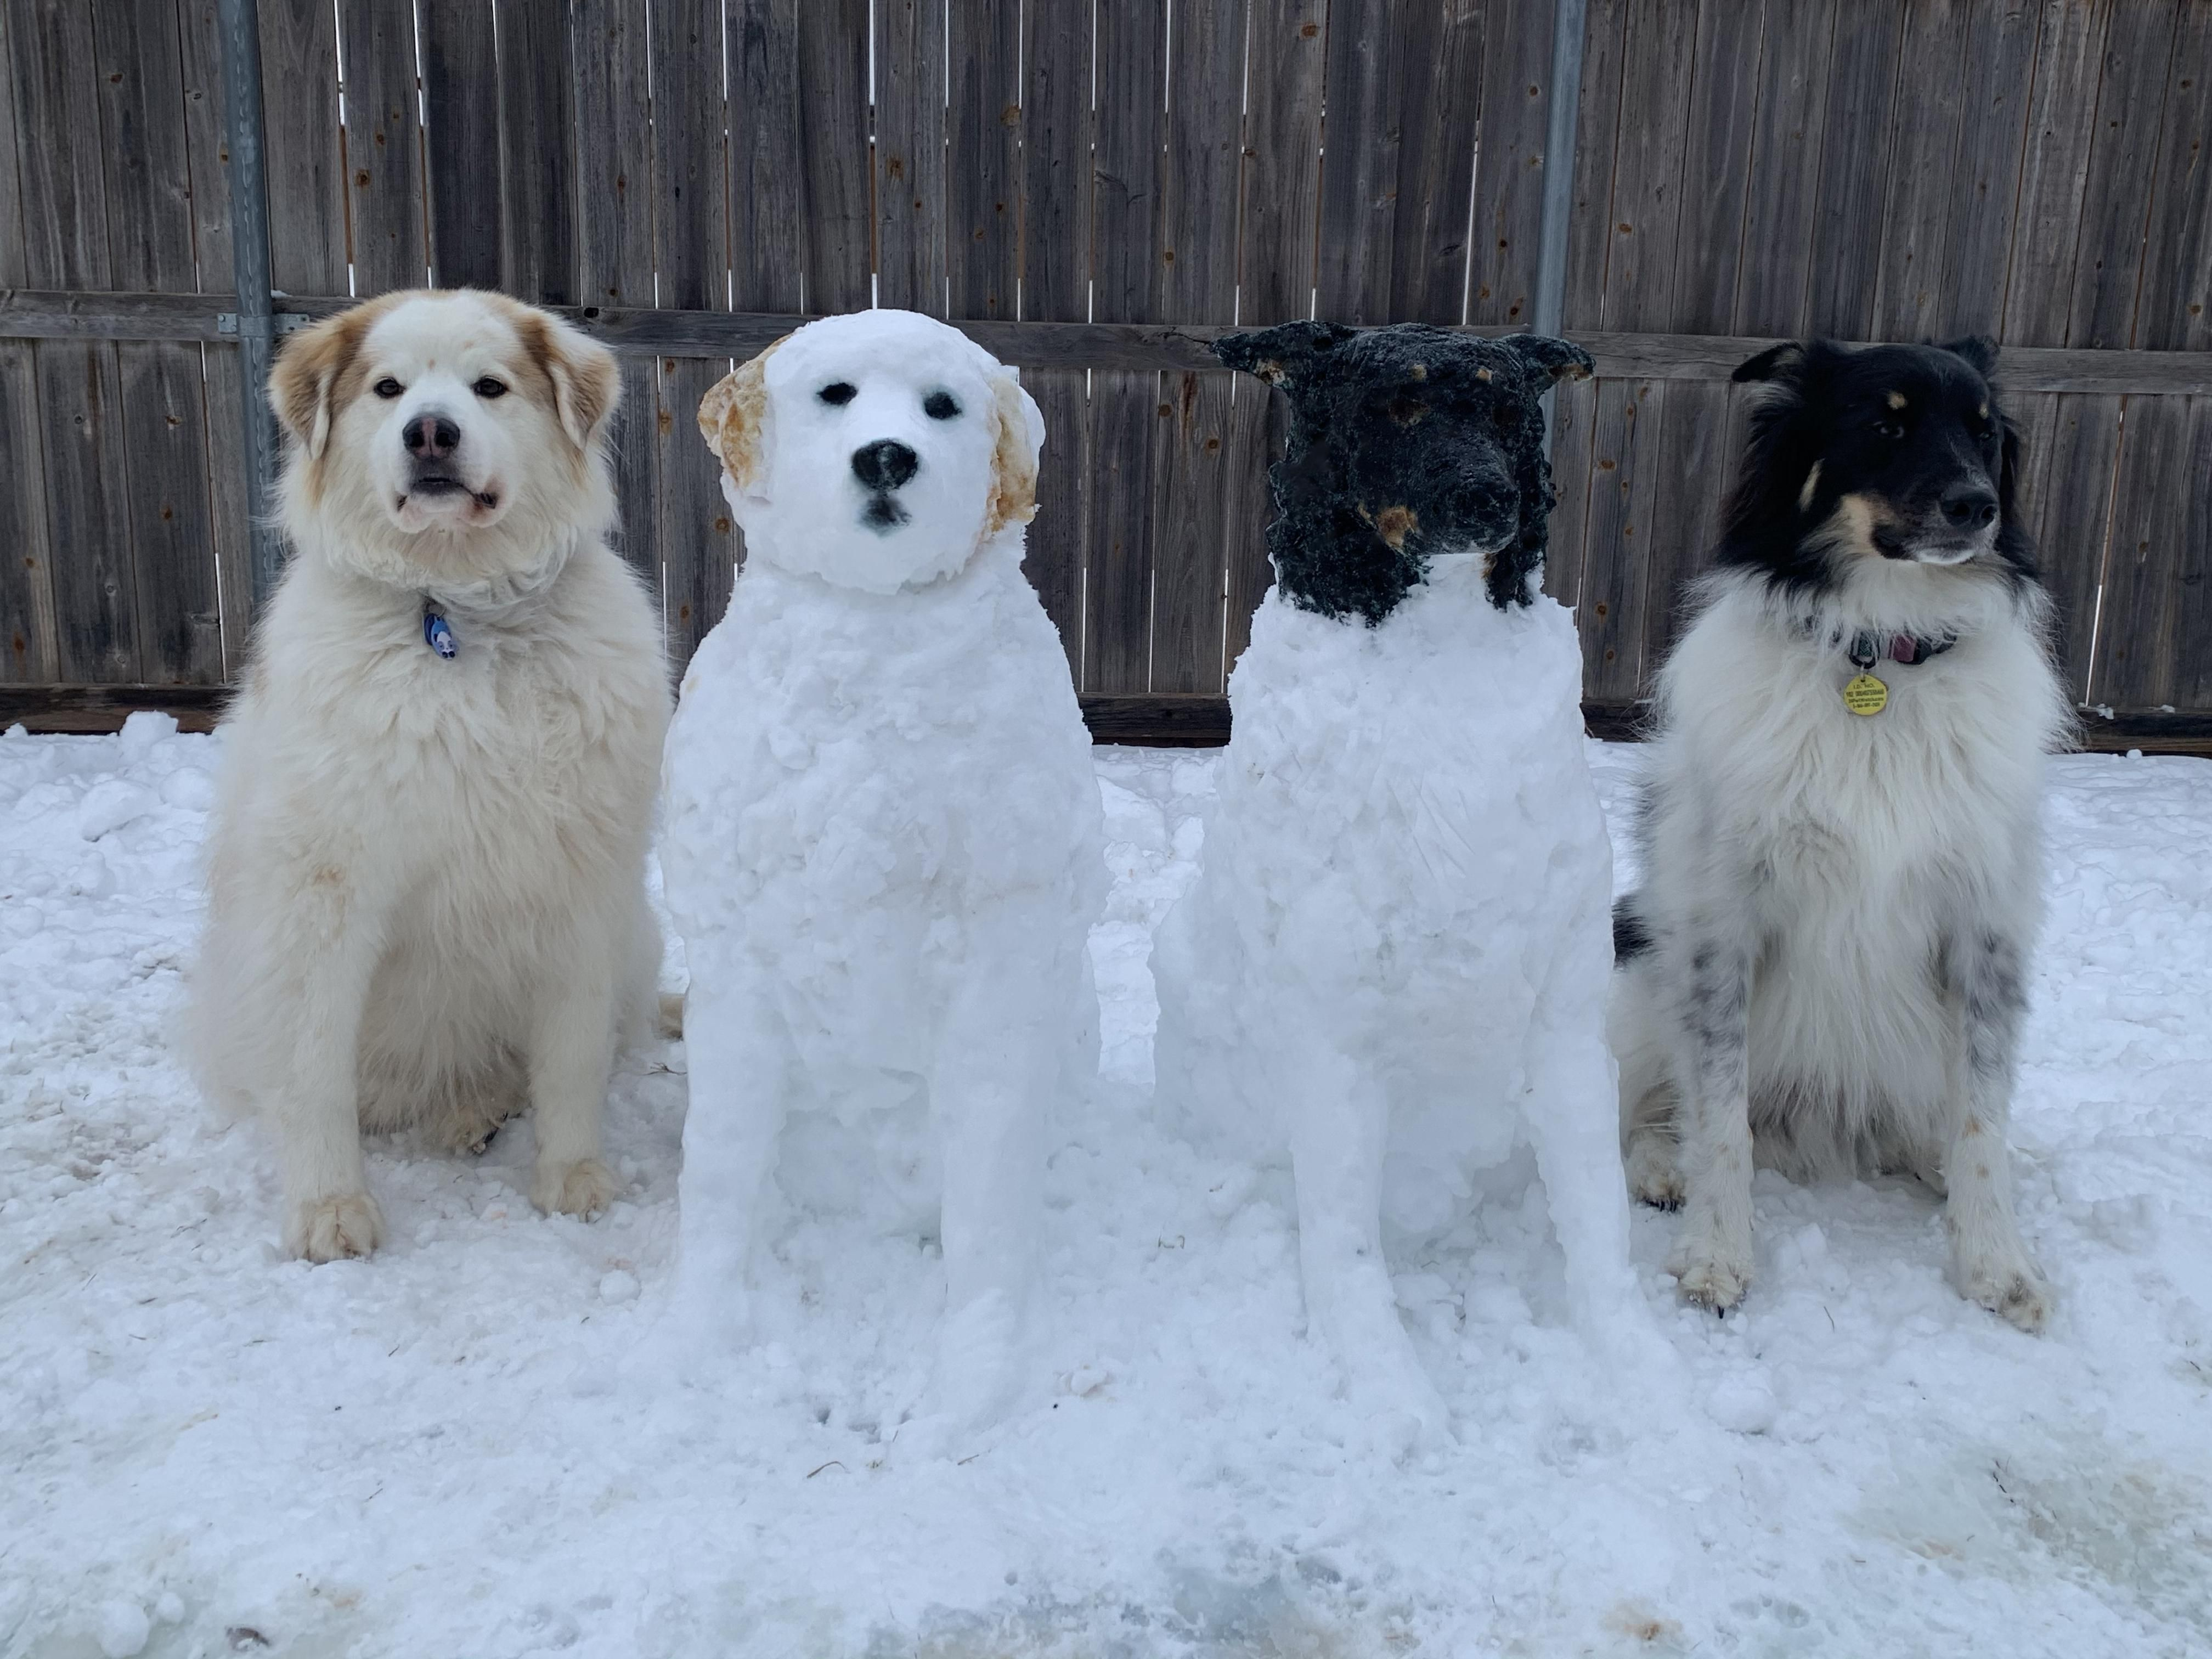 Look again. There are only two dogs in this photo.